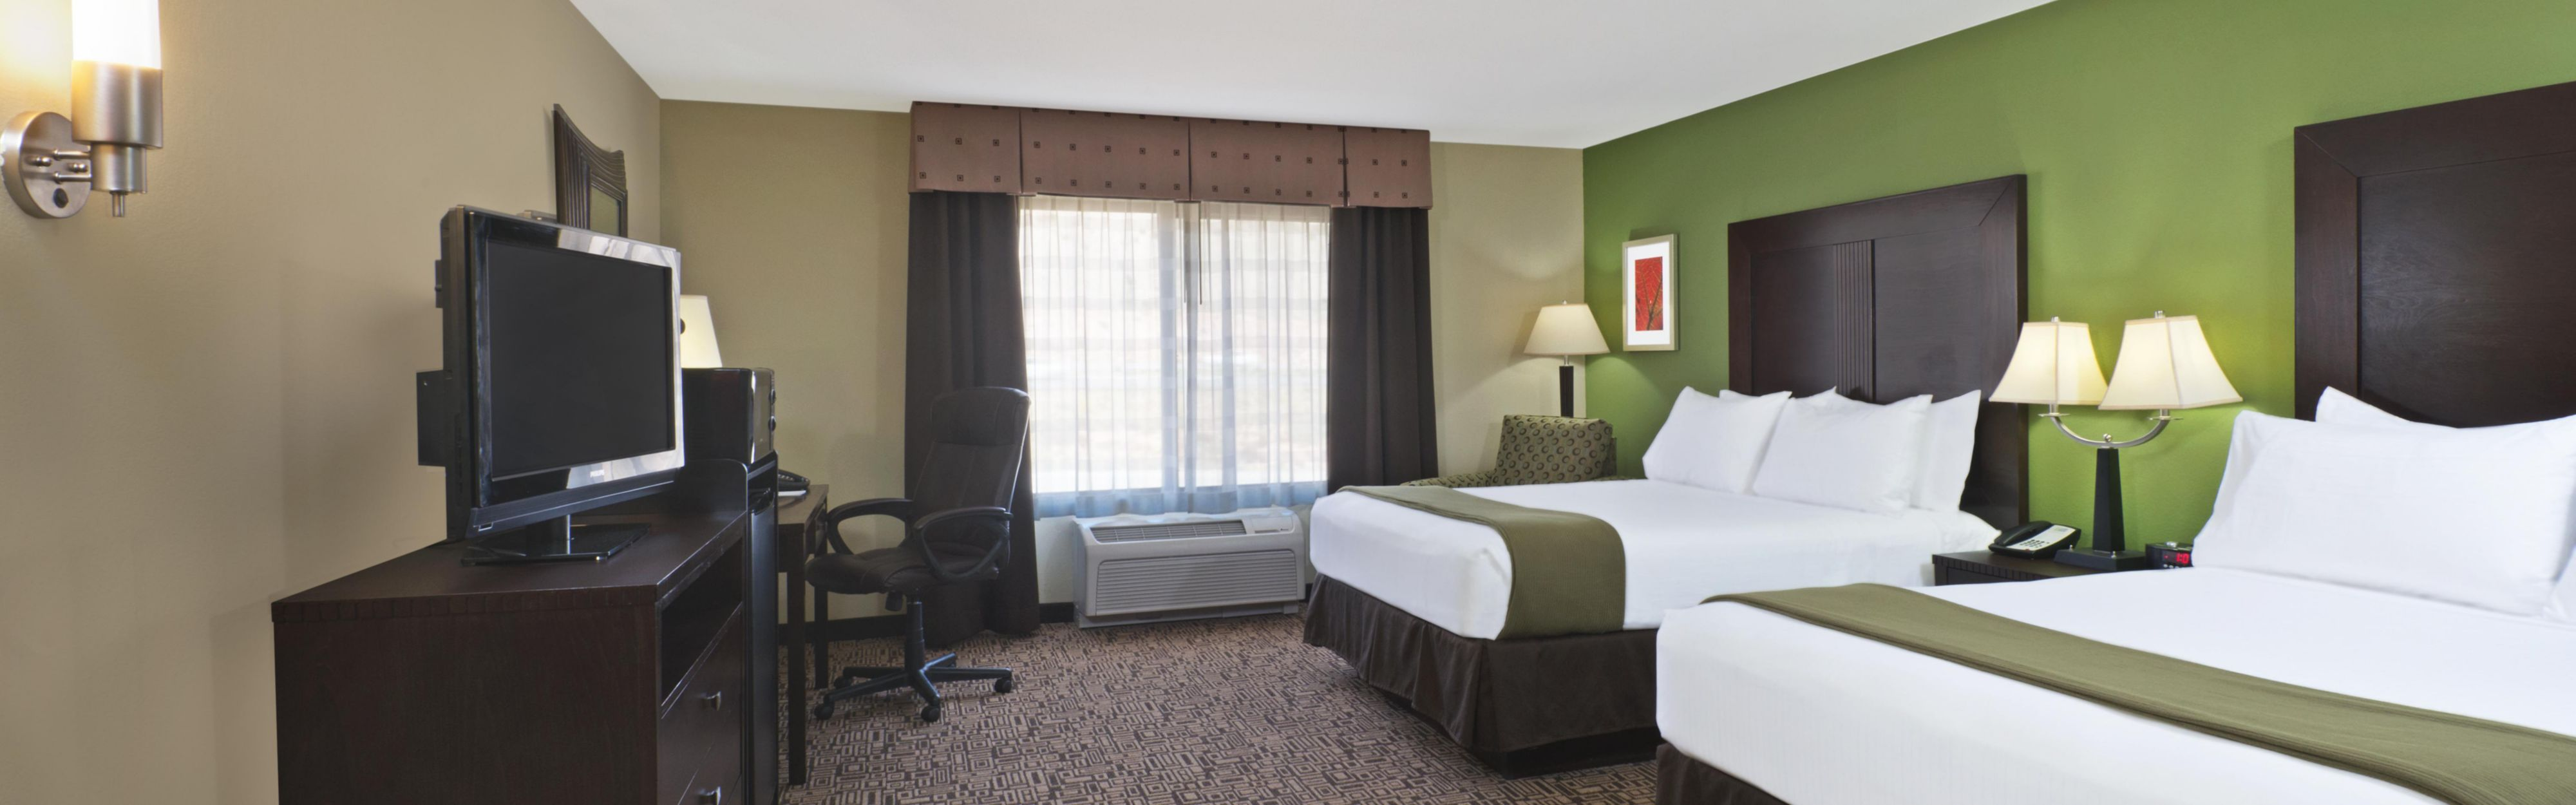 Holiday Inn Express & Suites Richfield image 1